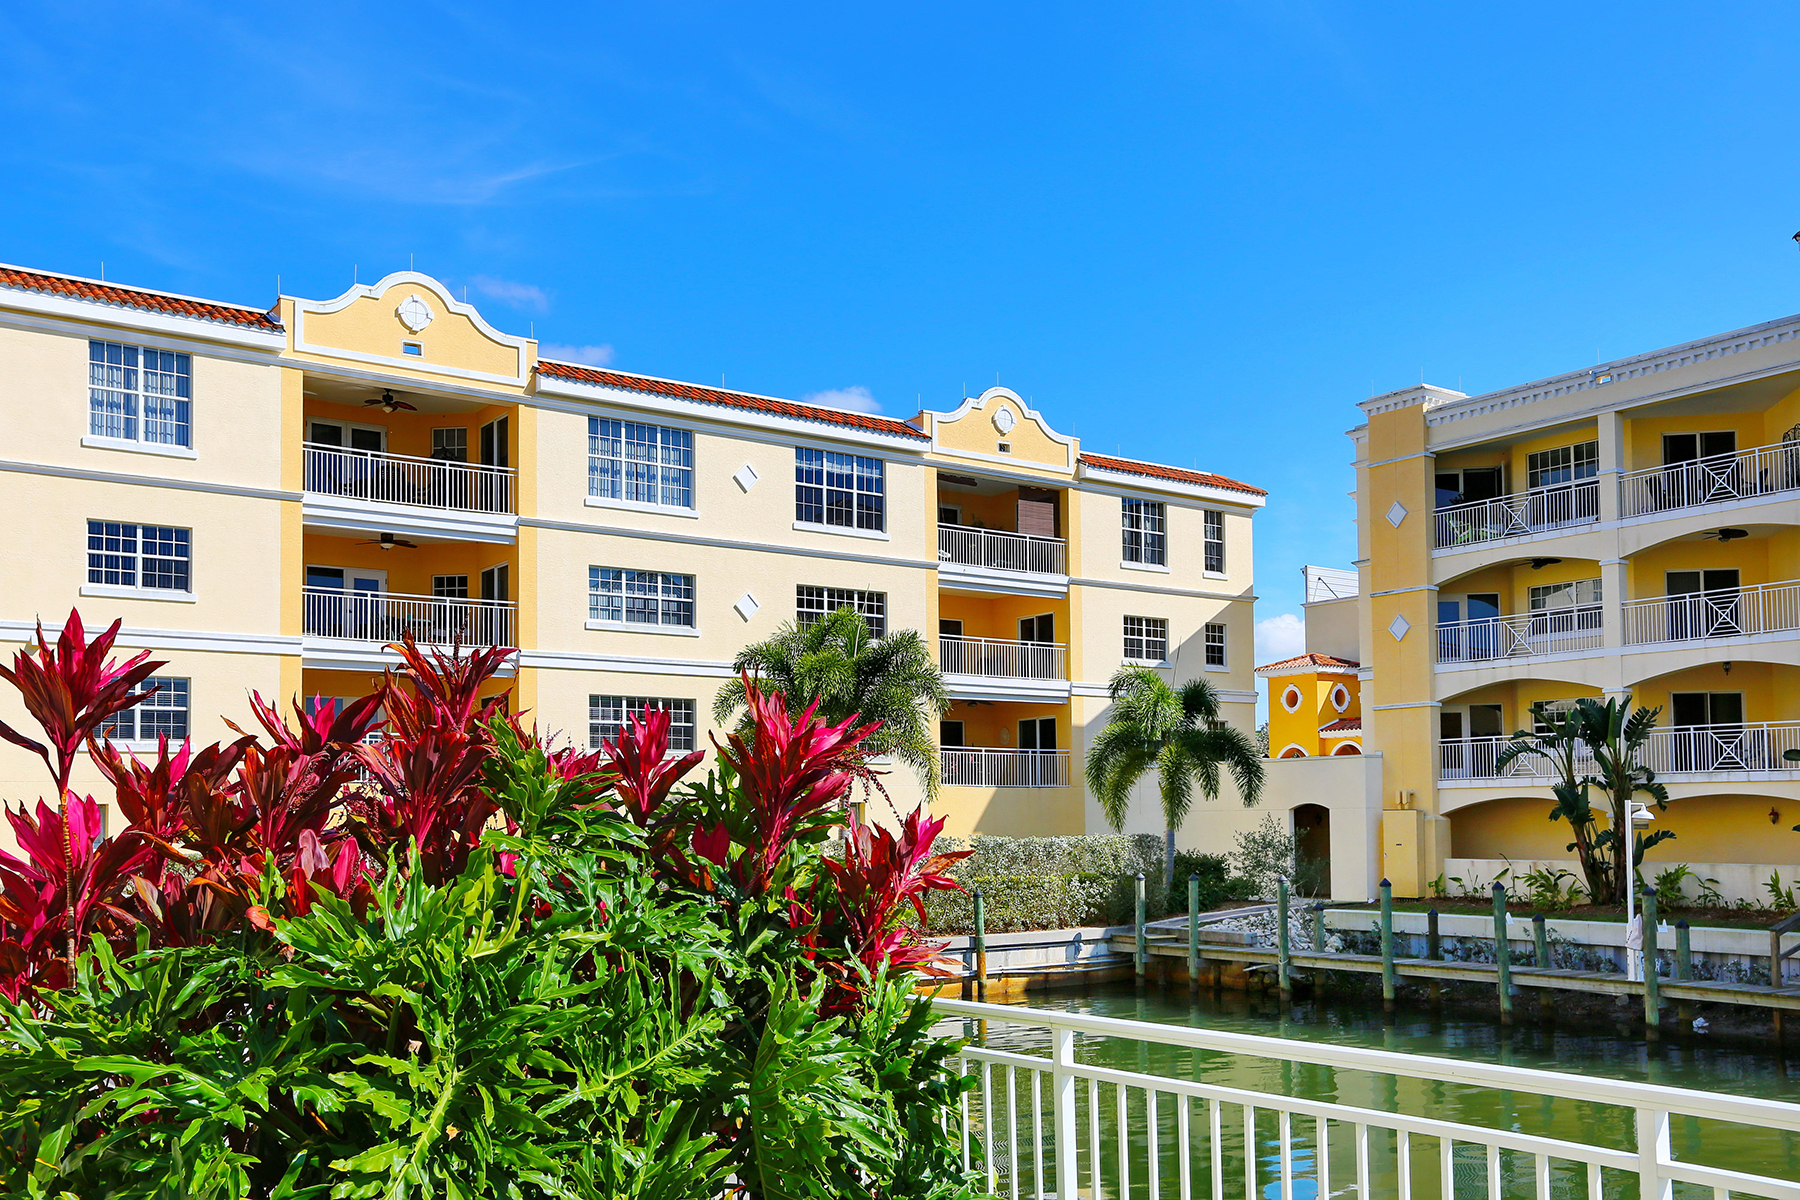 Condominium for Sale at THE VILLAS AT OSPREY HARBOR 14041 Bellagio Way 315 Osprey, Florida, 34229 United States